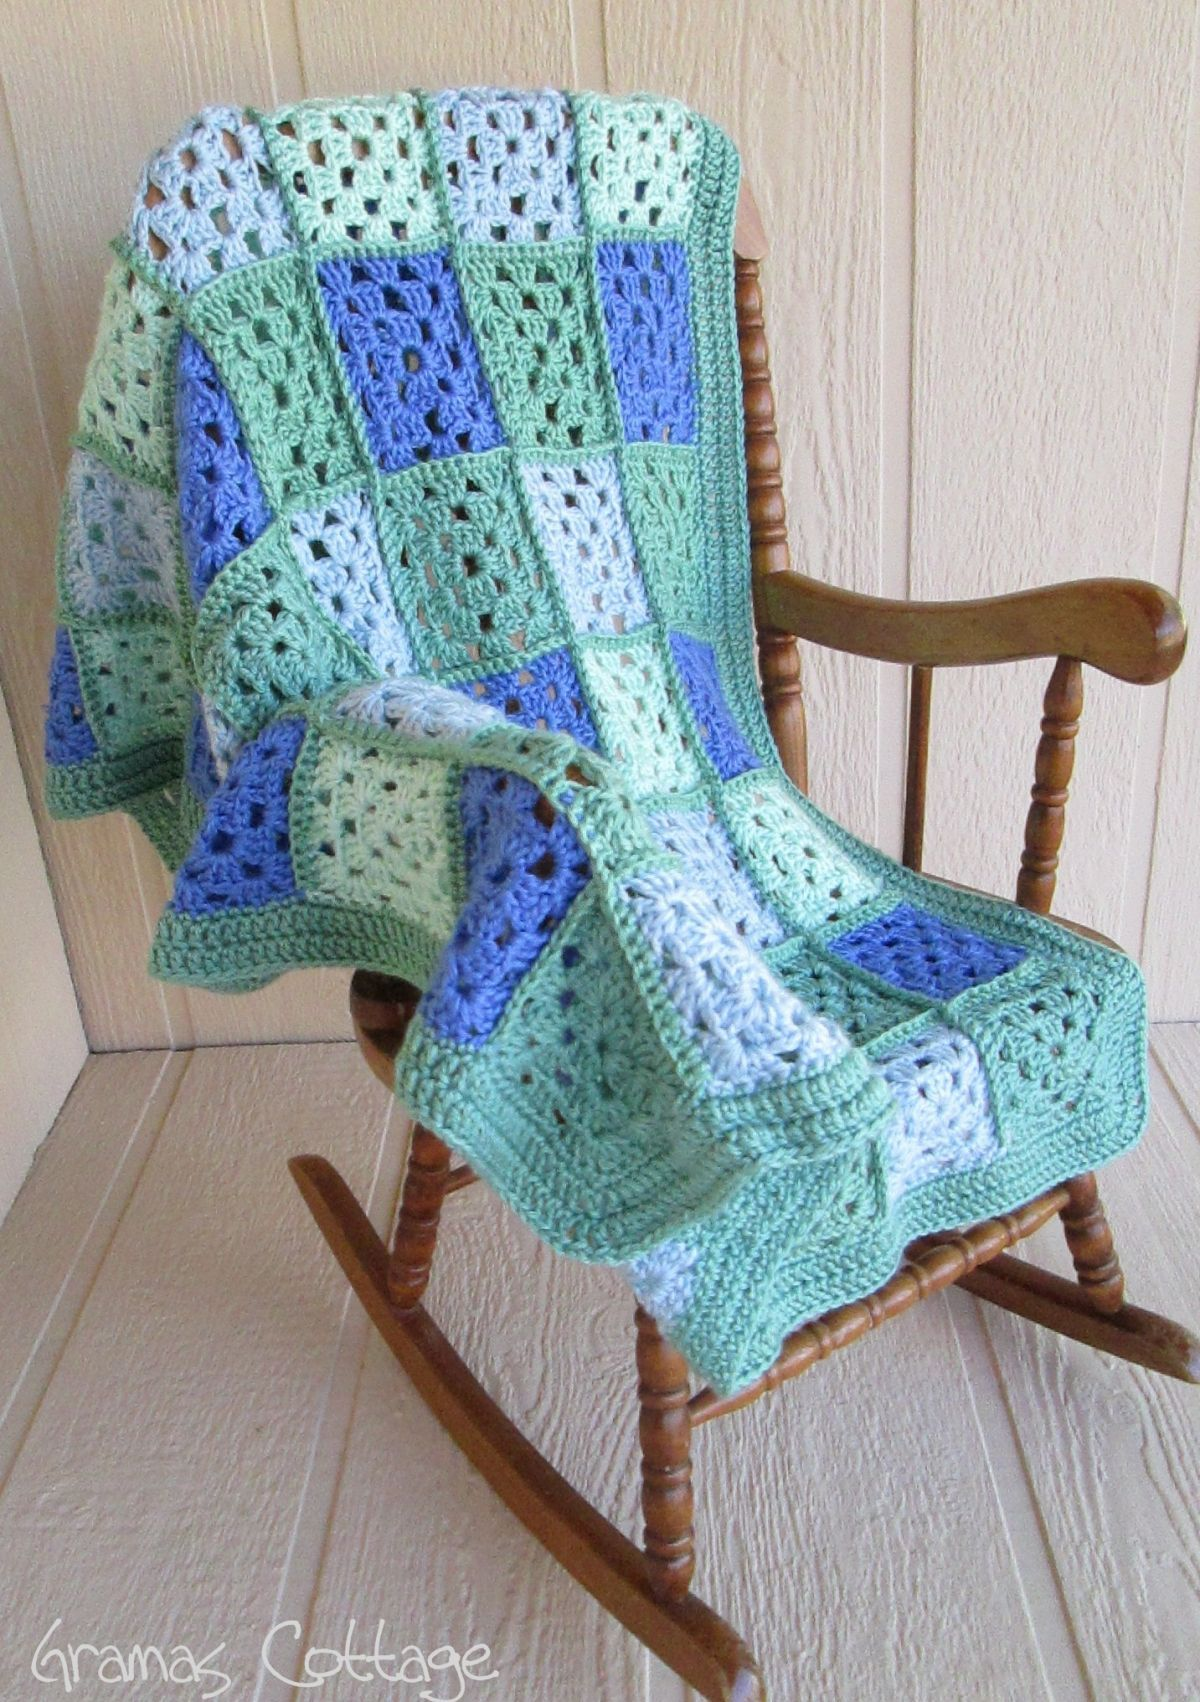 Old fashioned baby blanket   By Gramas Cottage